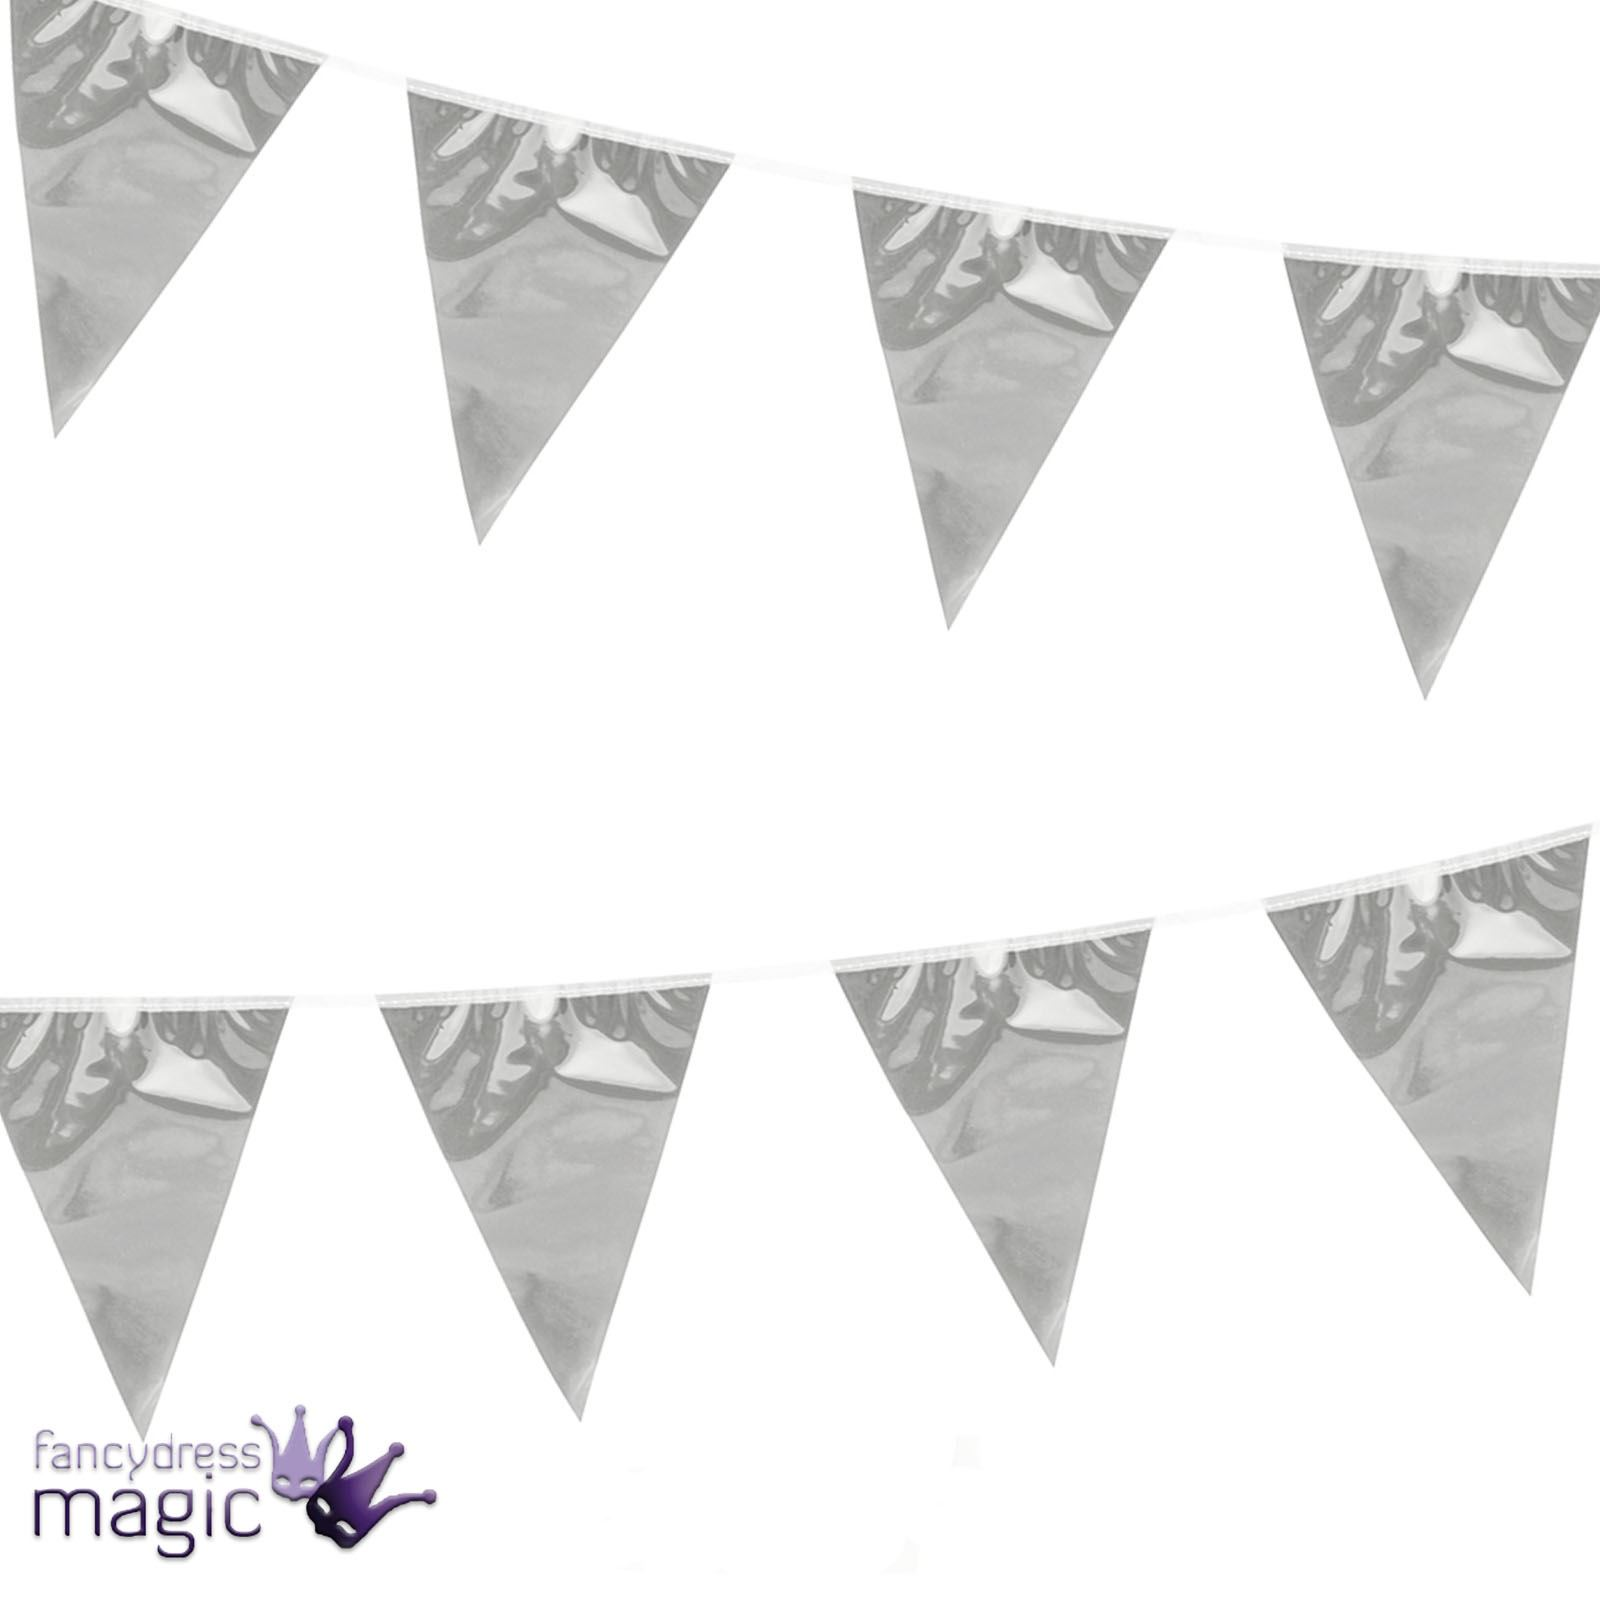 10m-Plastic-Bunting-Fete-Gala-Party-Banners-20-Flags-Giant-Indoor-Outdoor-Decor thumbnail 15